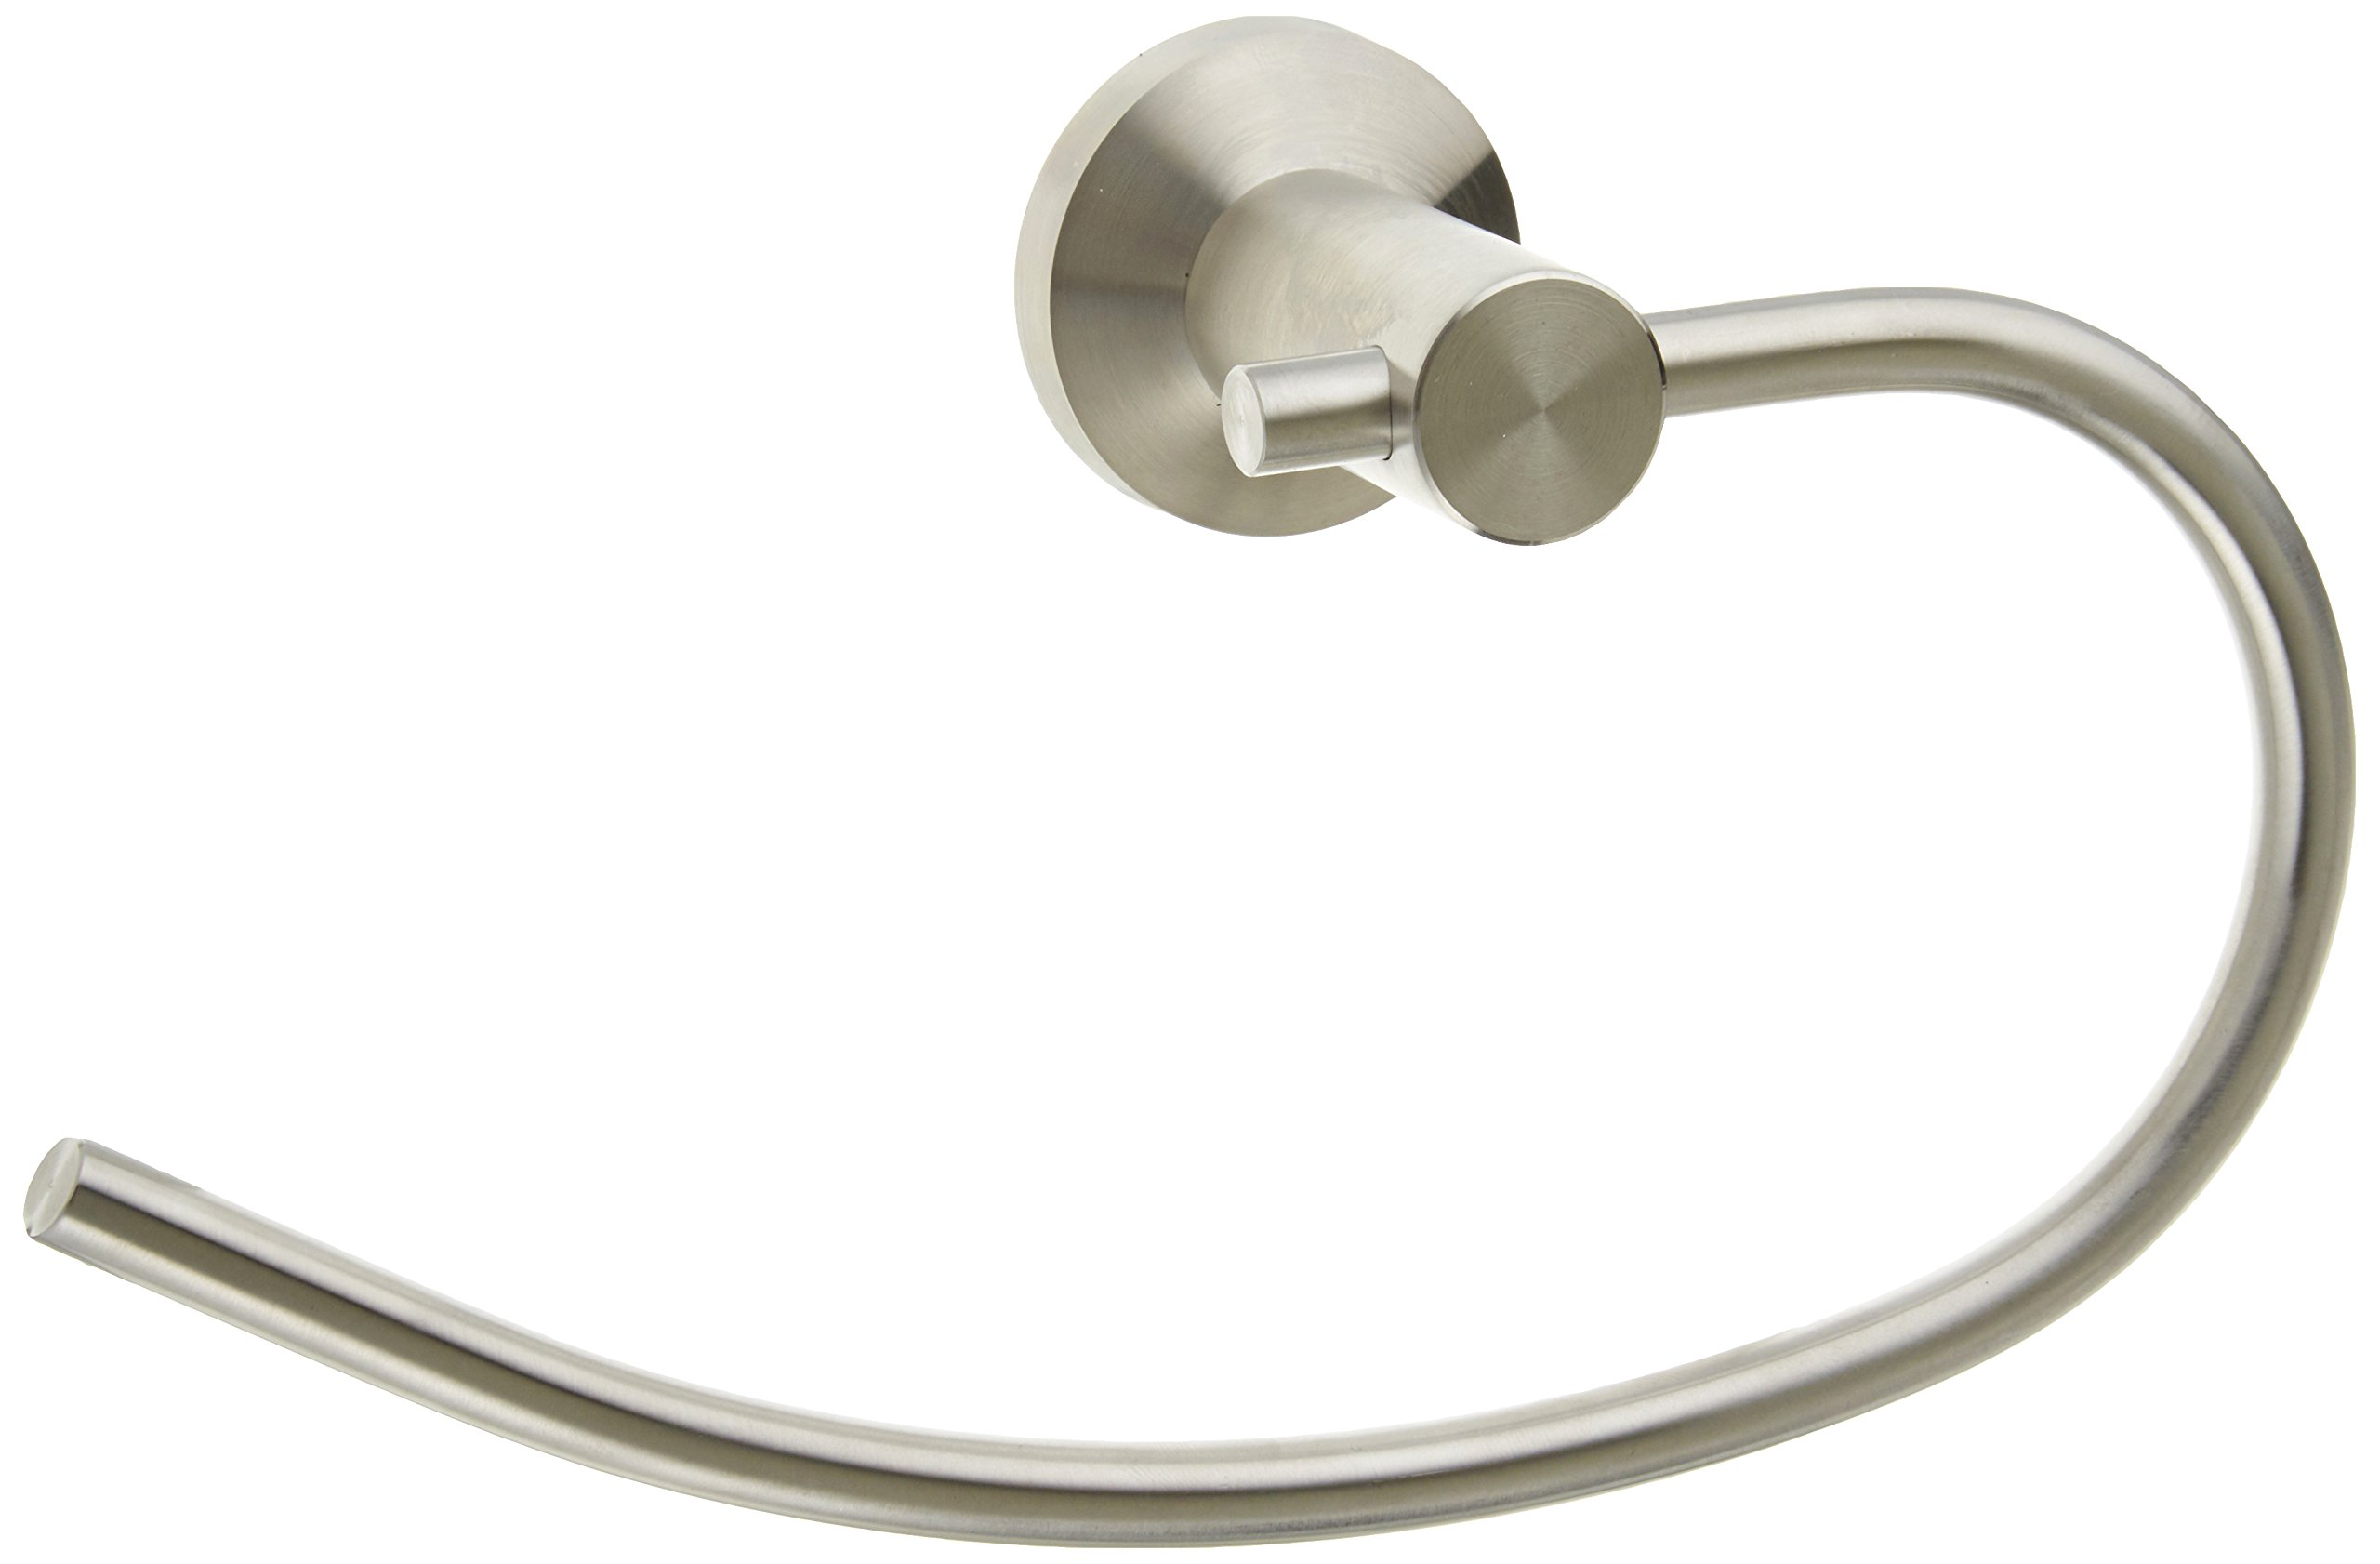 BOANN BNBATR Stainless Steel Towel Ring